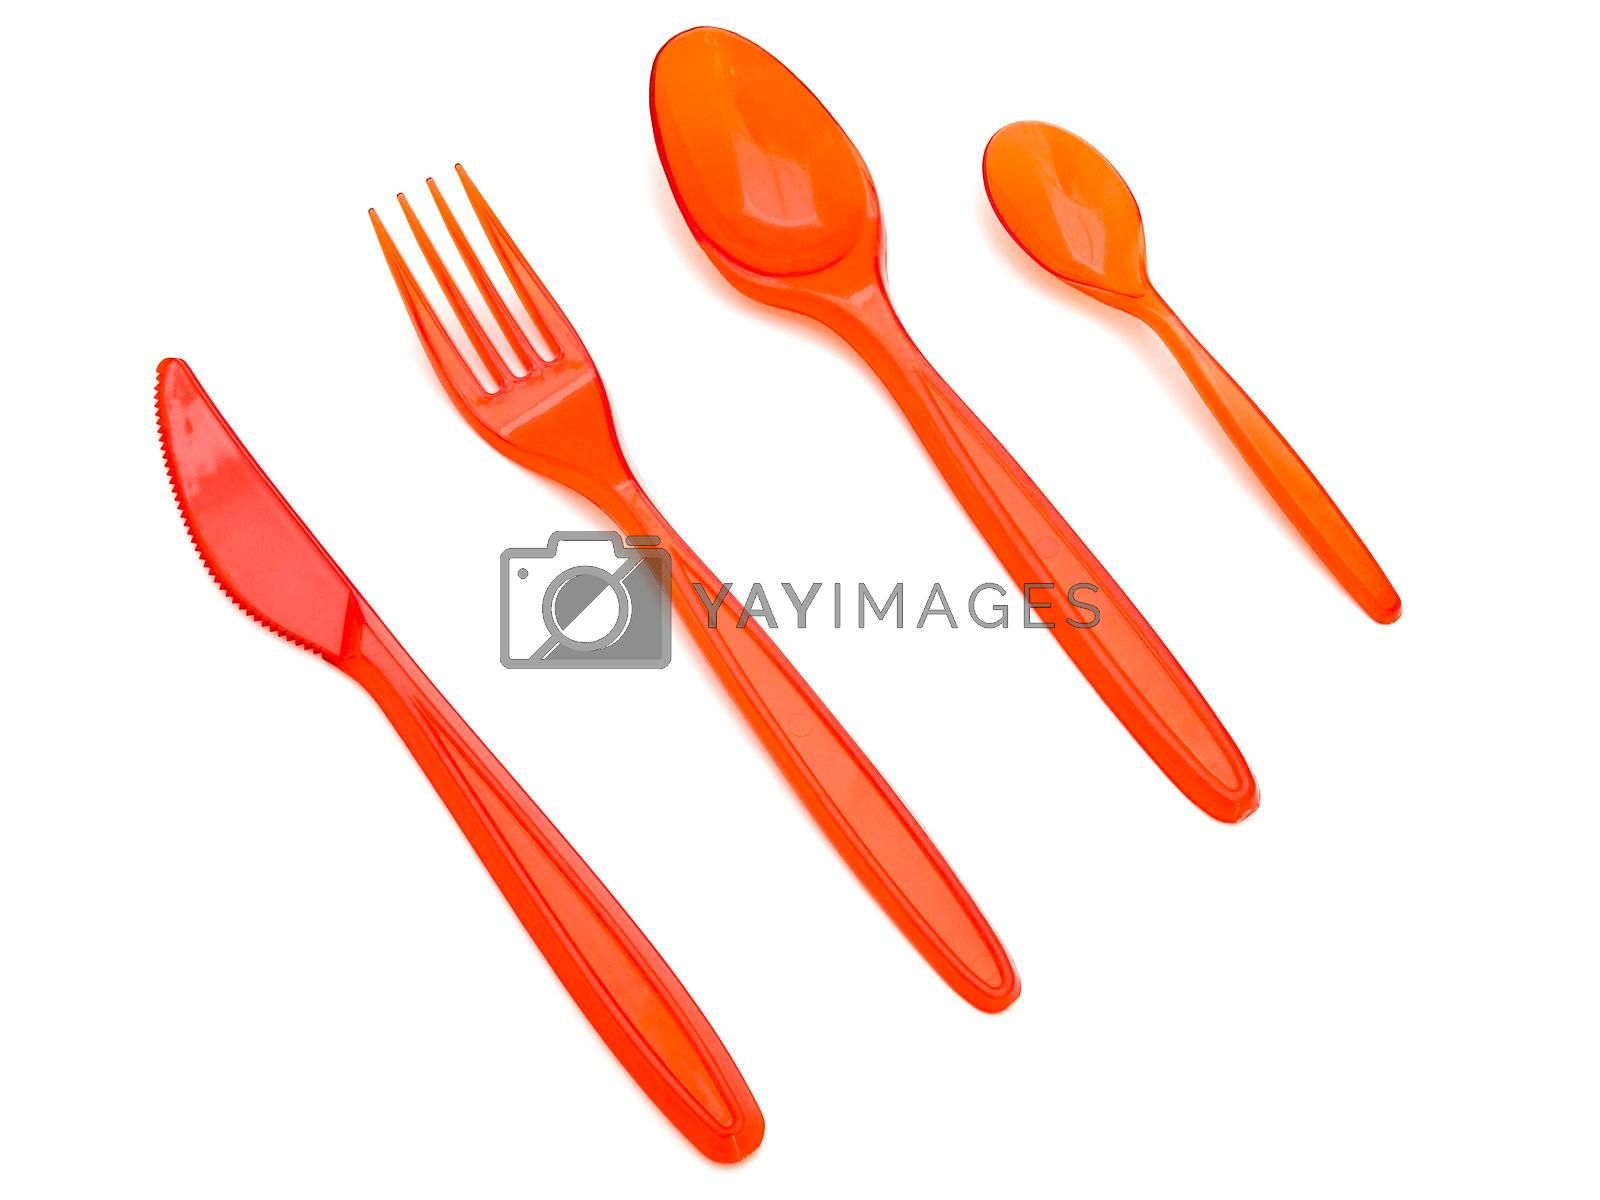 Royalty free image of plastic fork knife and spoons by SNR